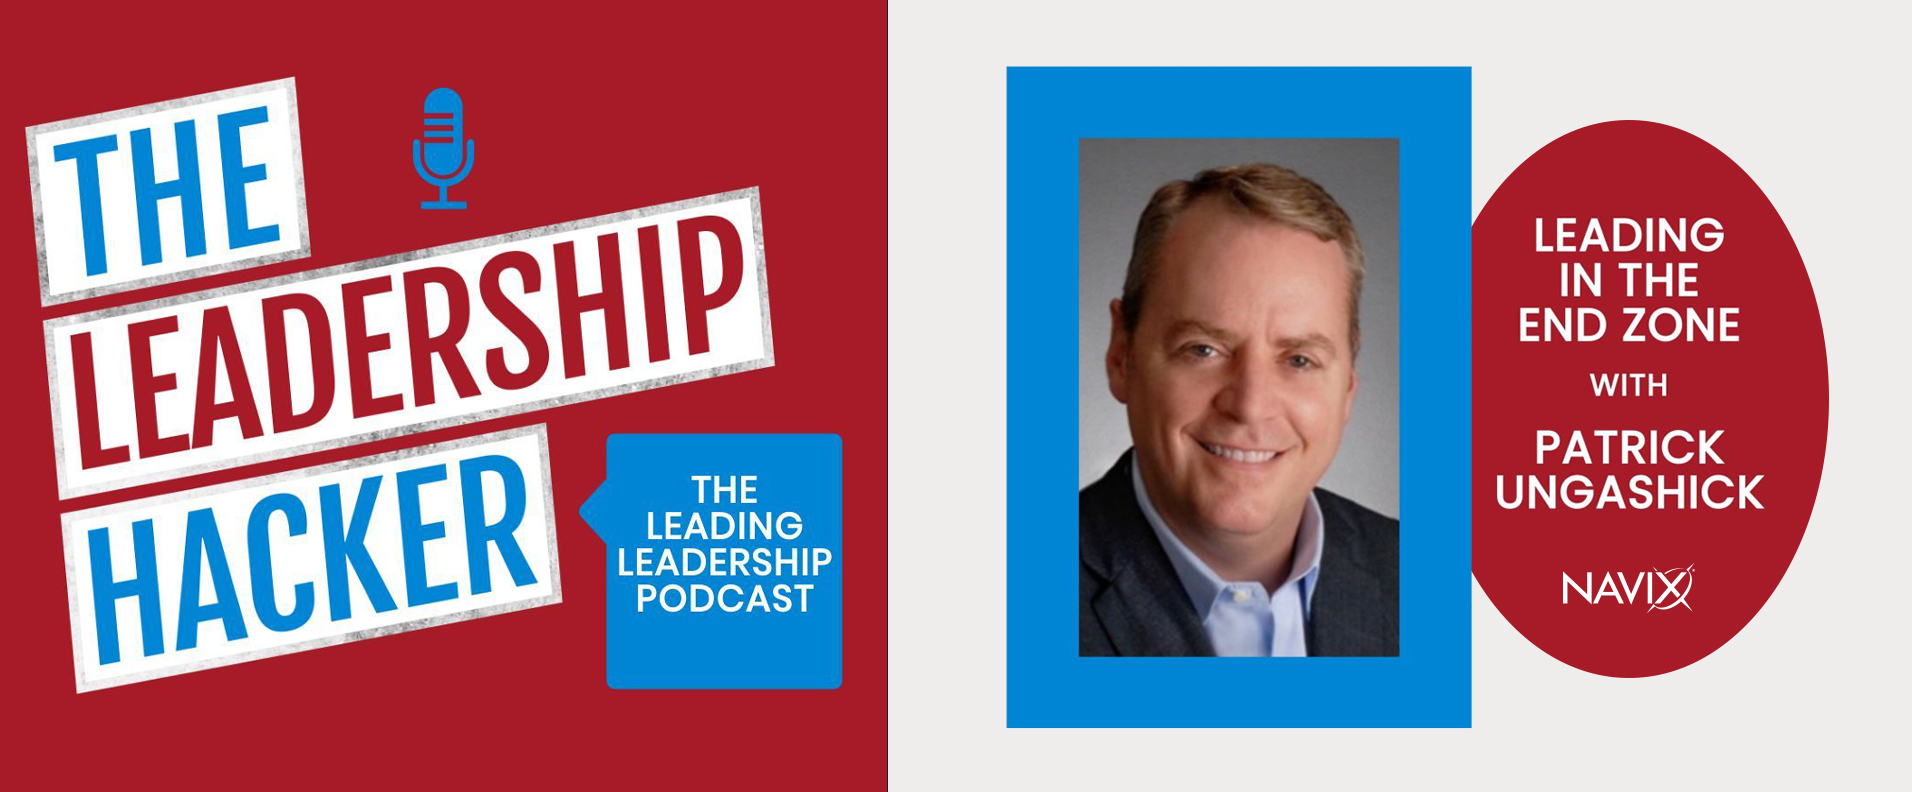 The Leadership Hacker Podcast: Leading in the End Zone w/ Patrick Ungashick